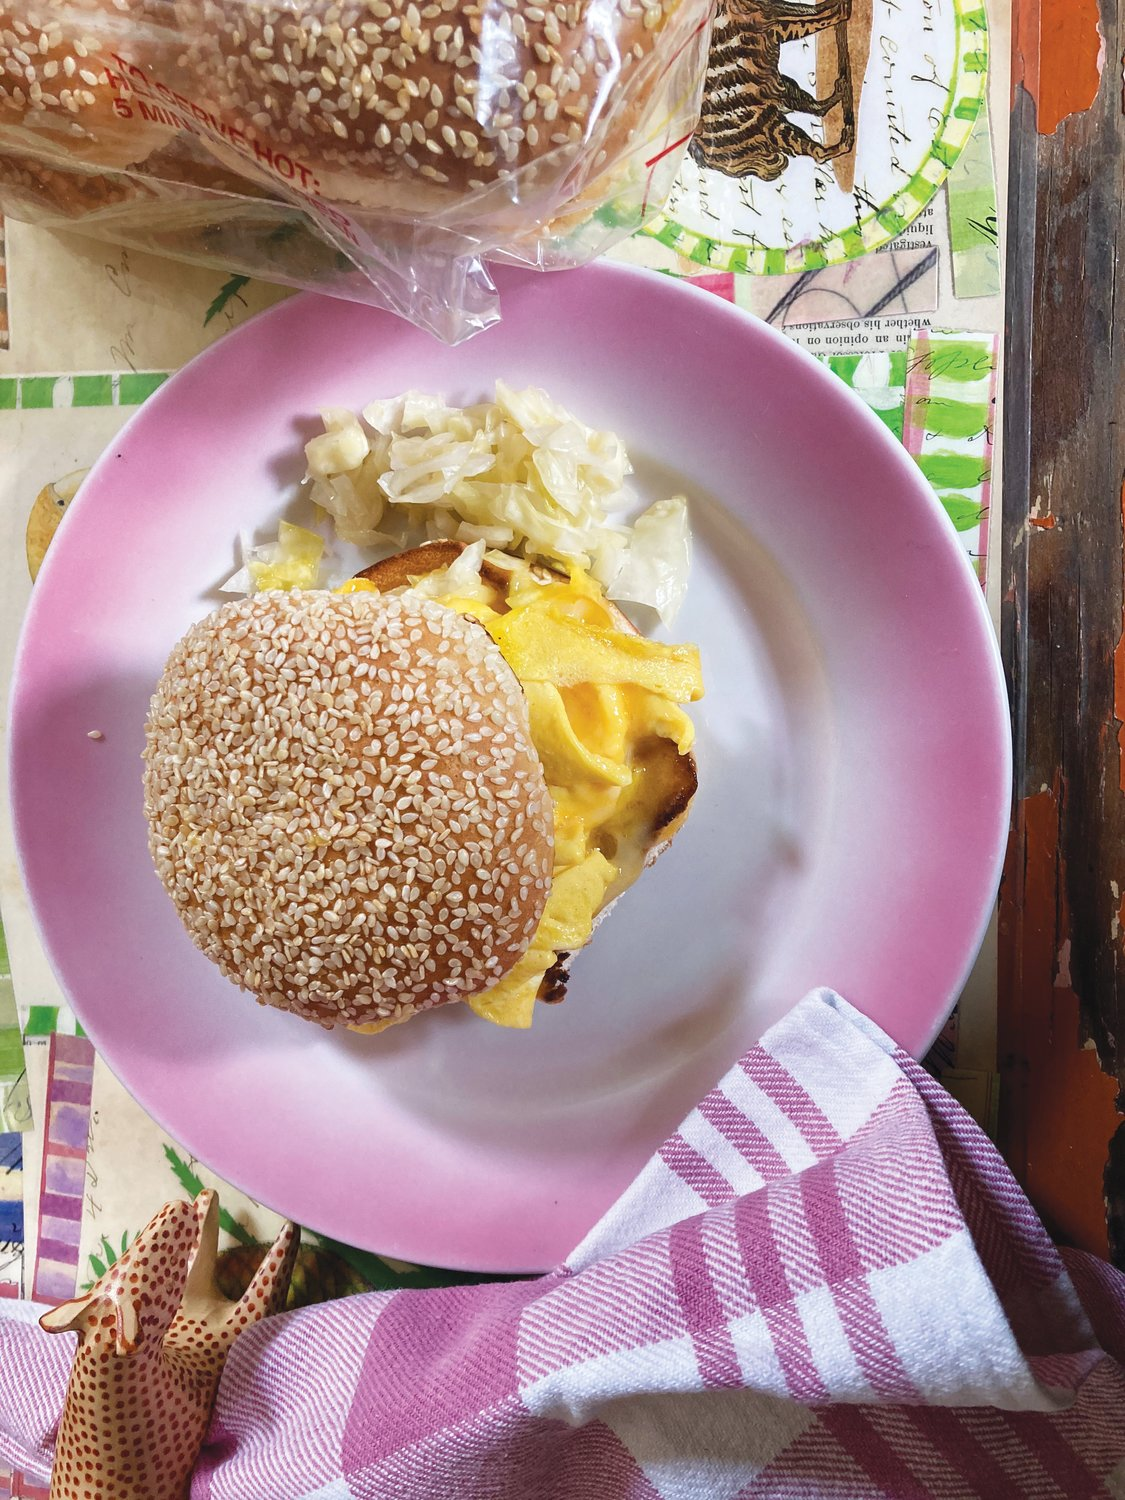 Kitty's Breakfast Sandwich as recreated by the author.